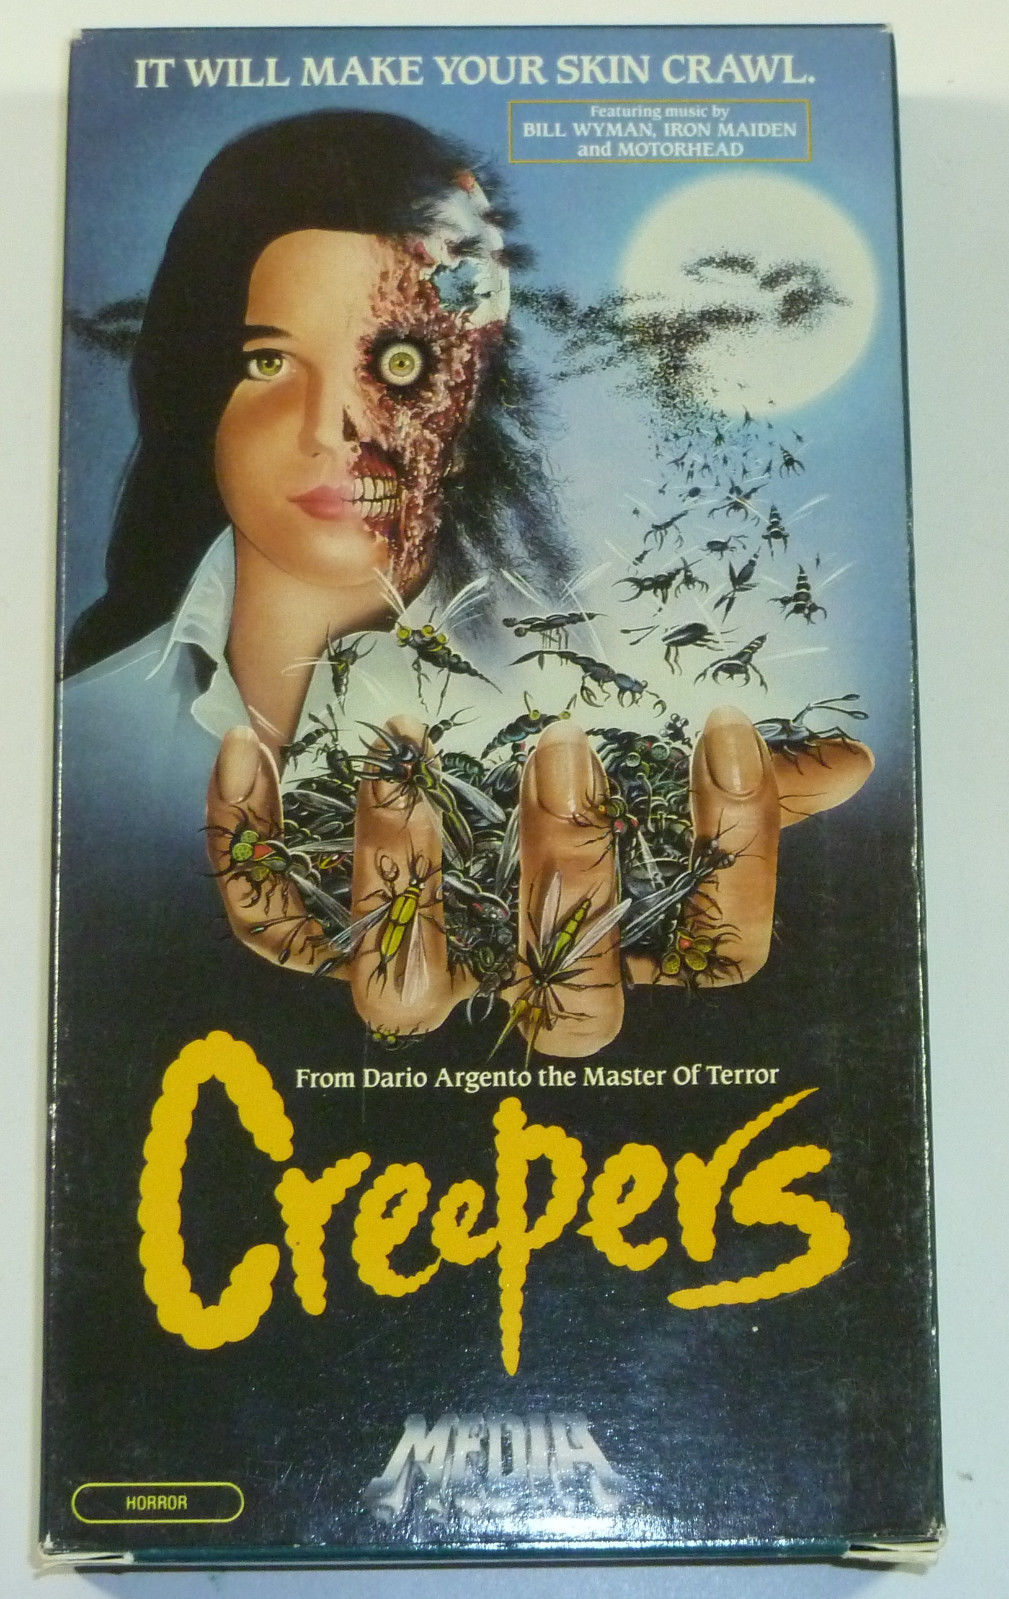 Creepers (1985) Jennifer Connelly, Daria Nicolodi